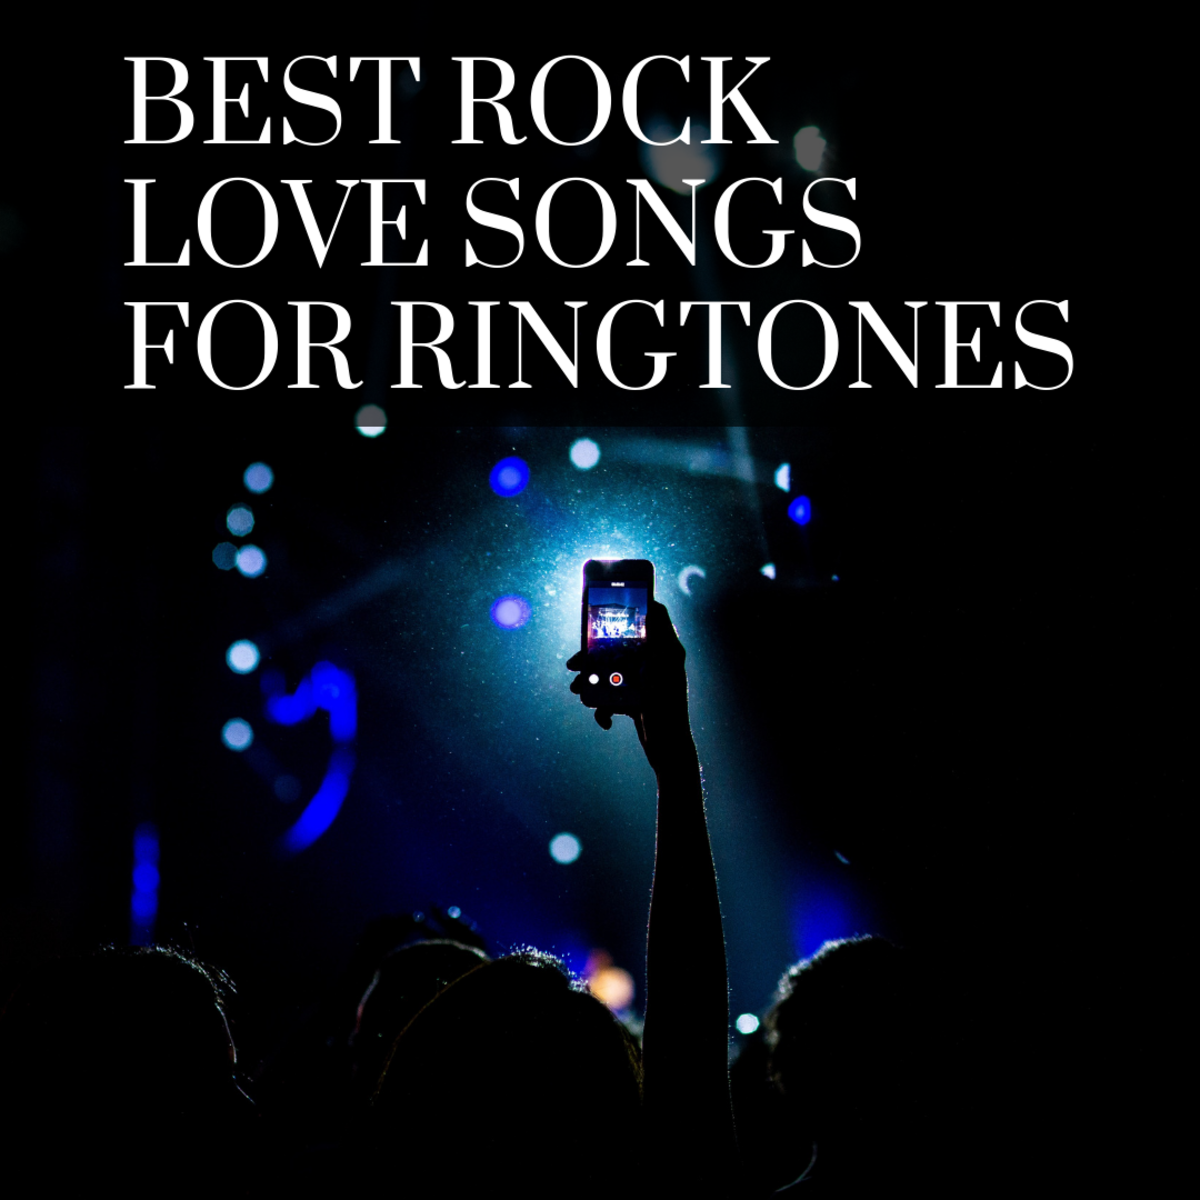 100 Best Rock Love Songs for Ringtones